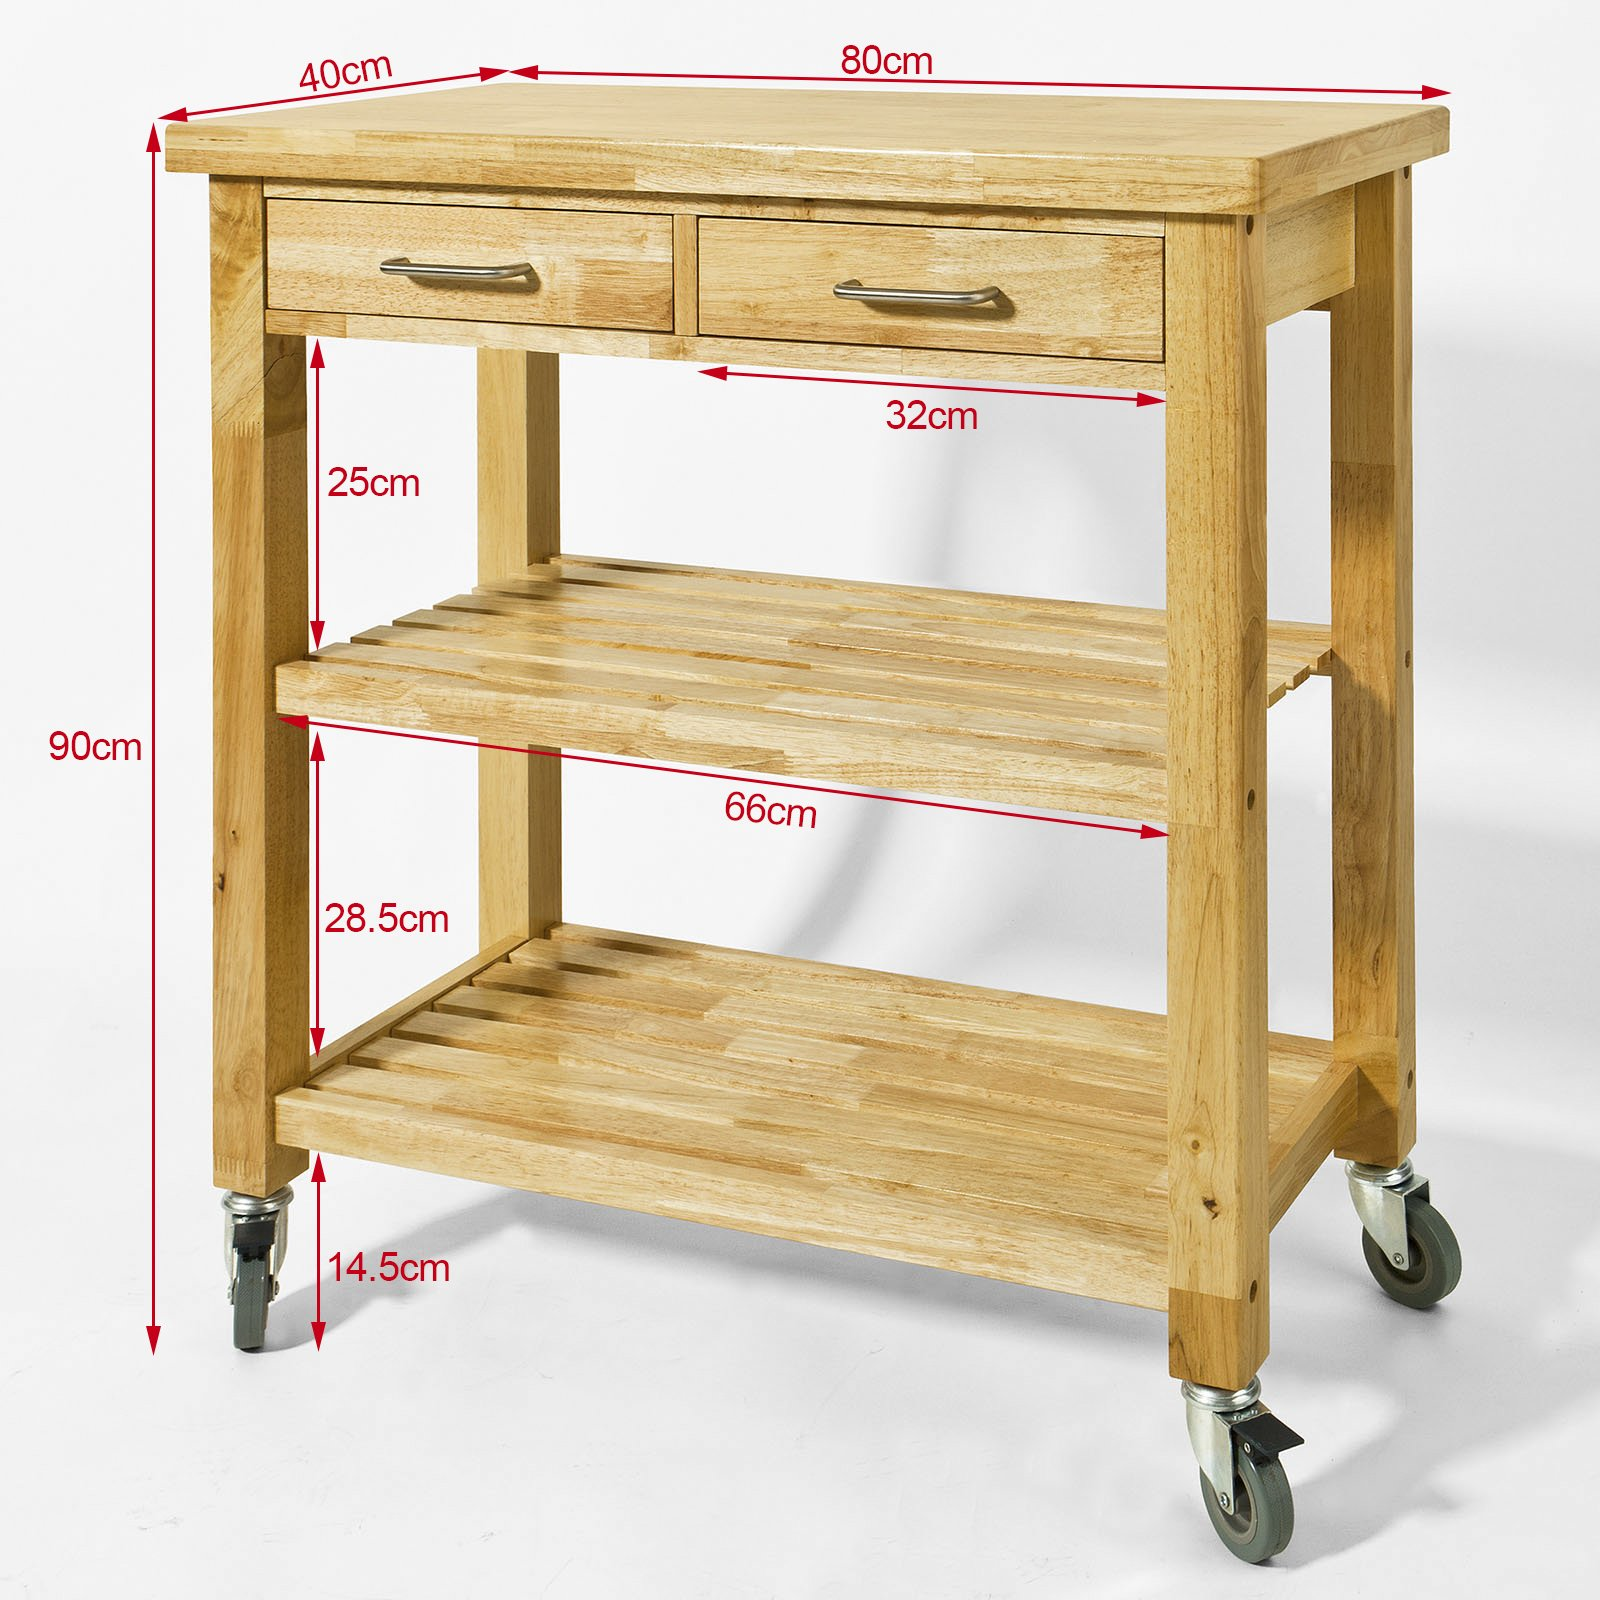 Haotian FKW24-N (natual), Rubber Wood Kitchen Trolley Cart with Two Drawers & Shelves, Kitchen Storage Trolley, L80cm(31.5in)xW40cm(15.7in)xH90cm(35.4in) by Haotian (Image #9)